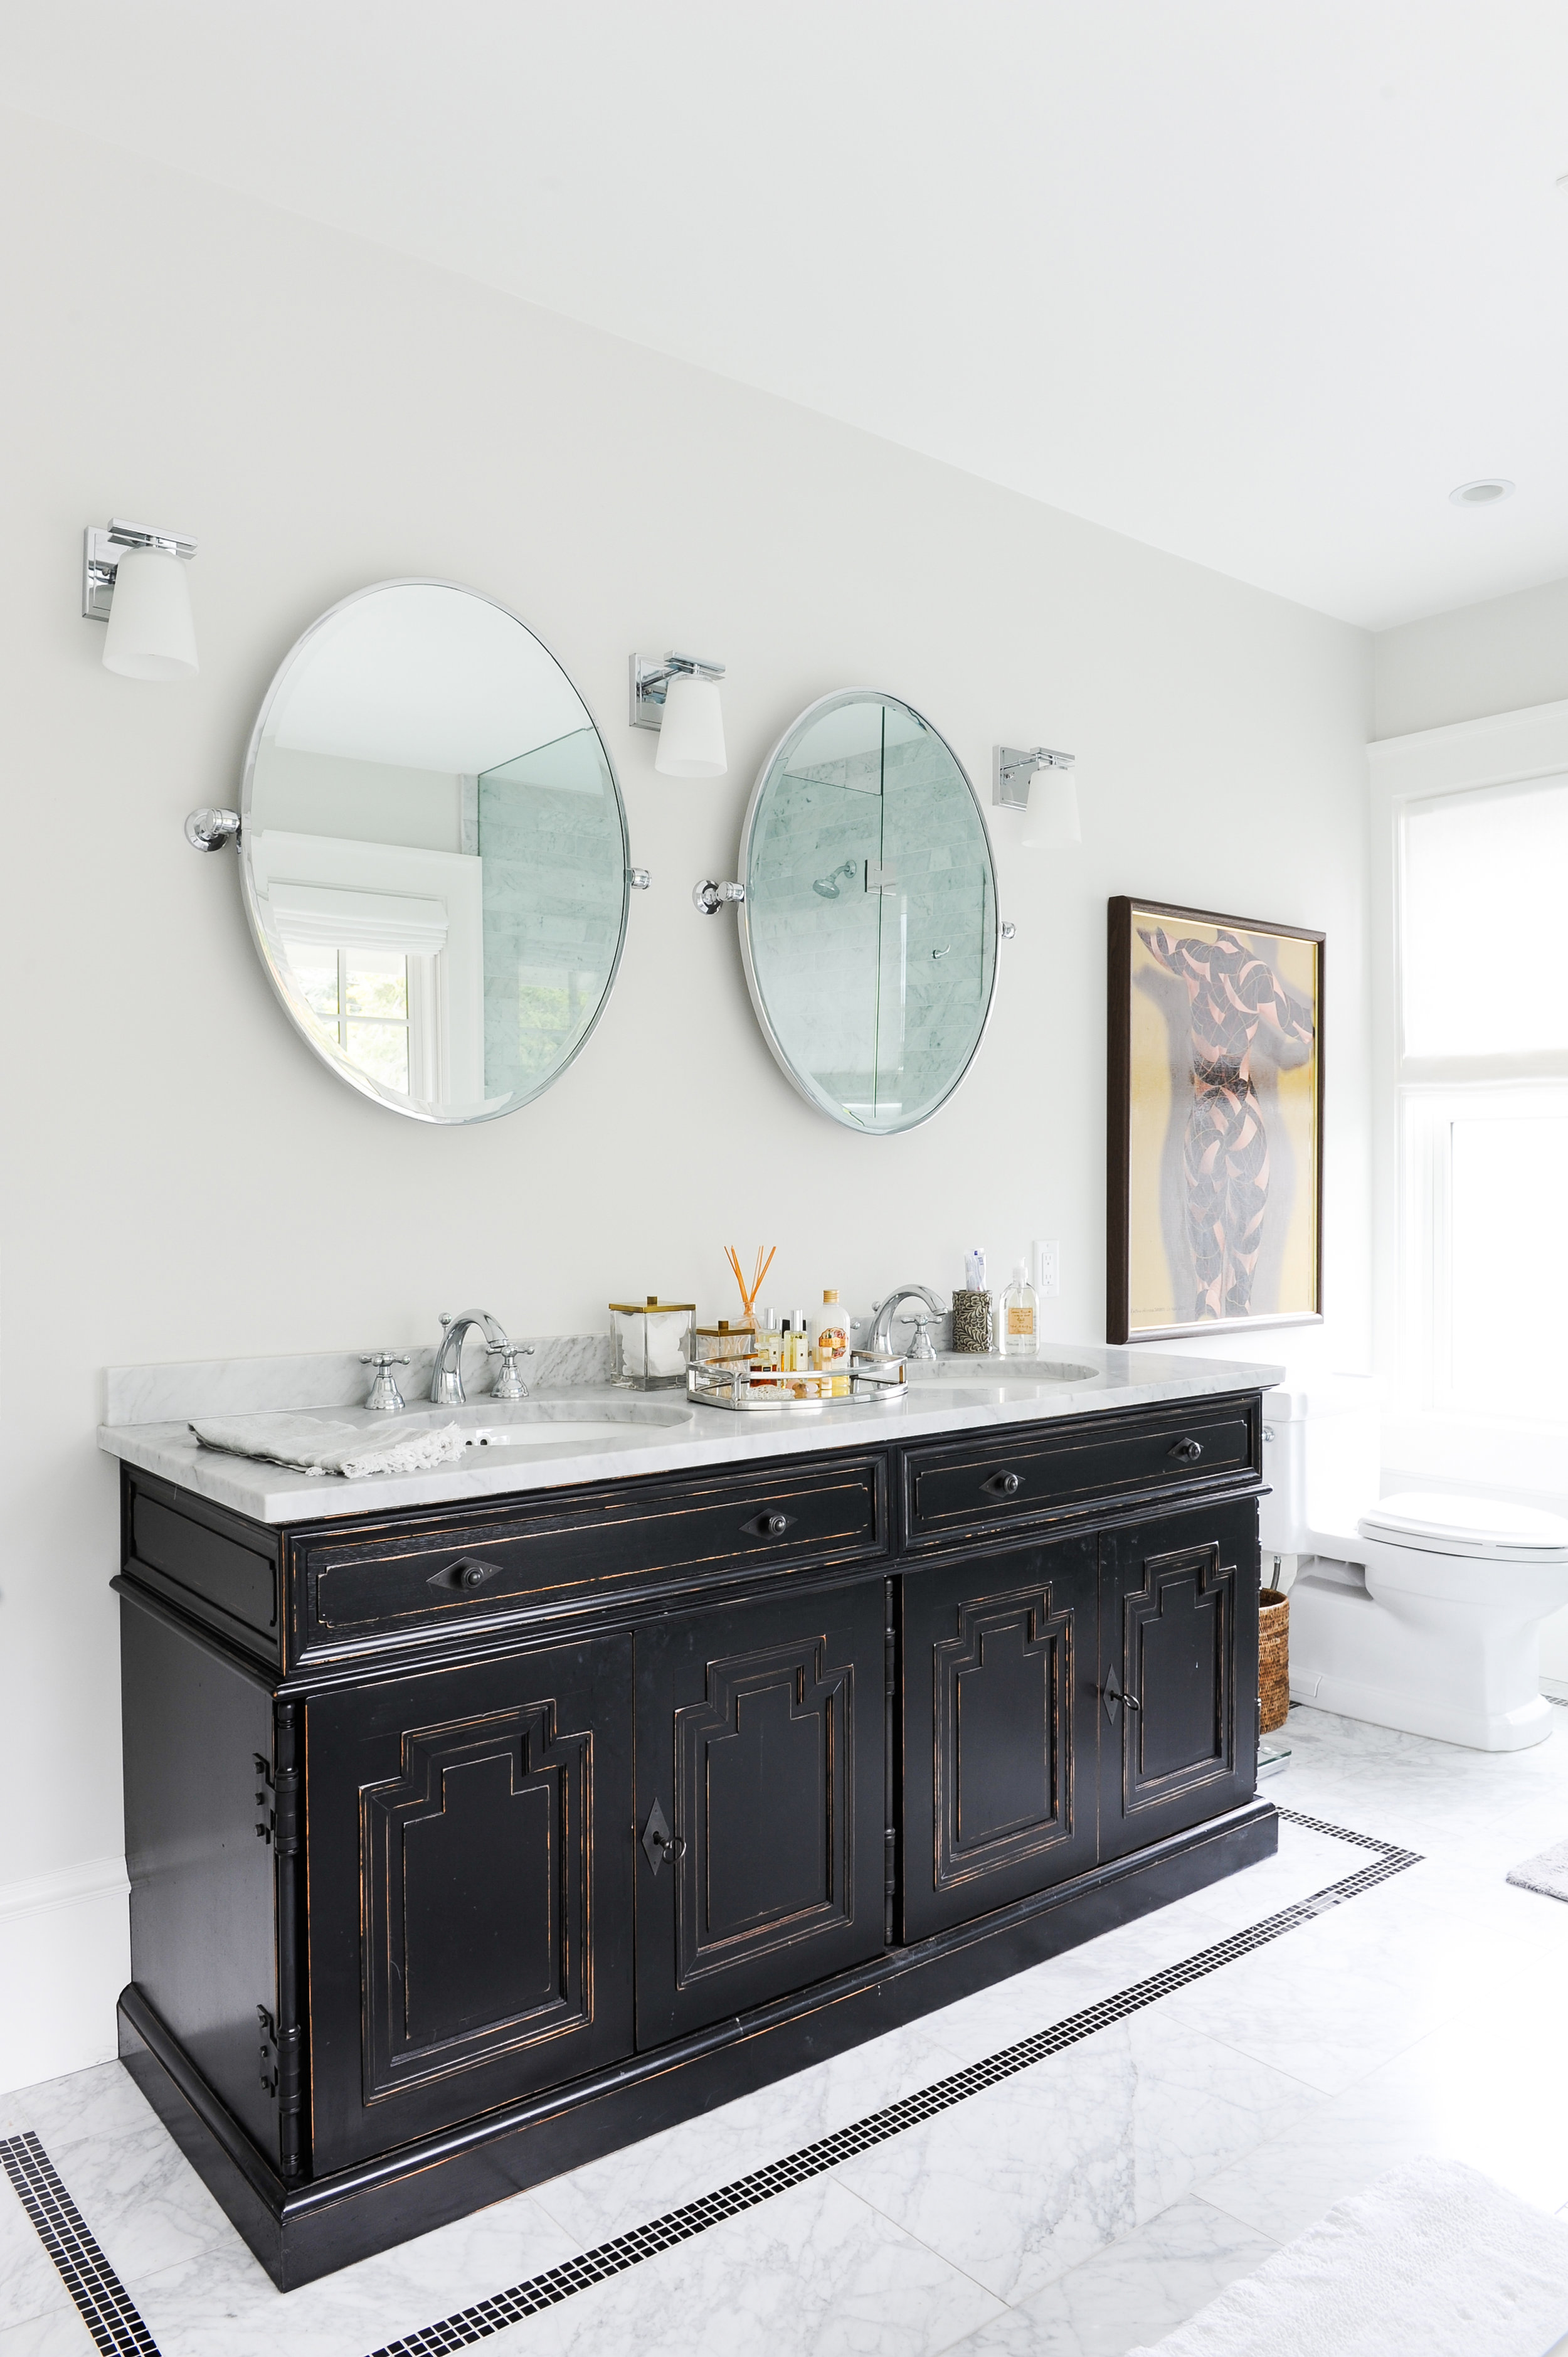 His and hers sinks fitted into a dark wood antique cabinet fill this bathroom. Above the sinks hang two large round vanity mirrors. A brown and yellow painting hangs to the right of the vanity above the toilet.